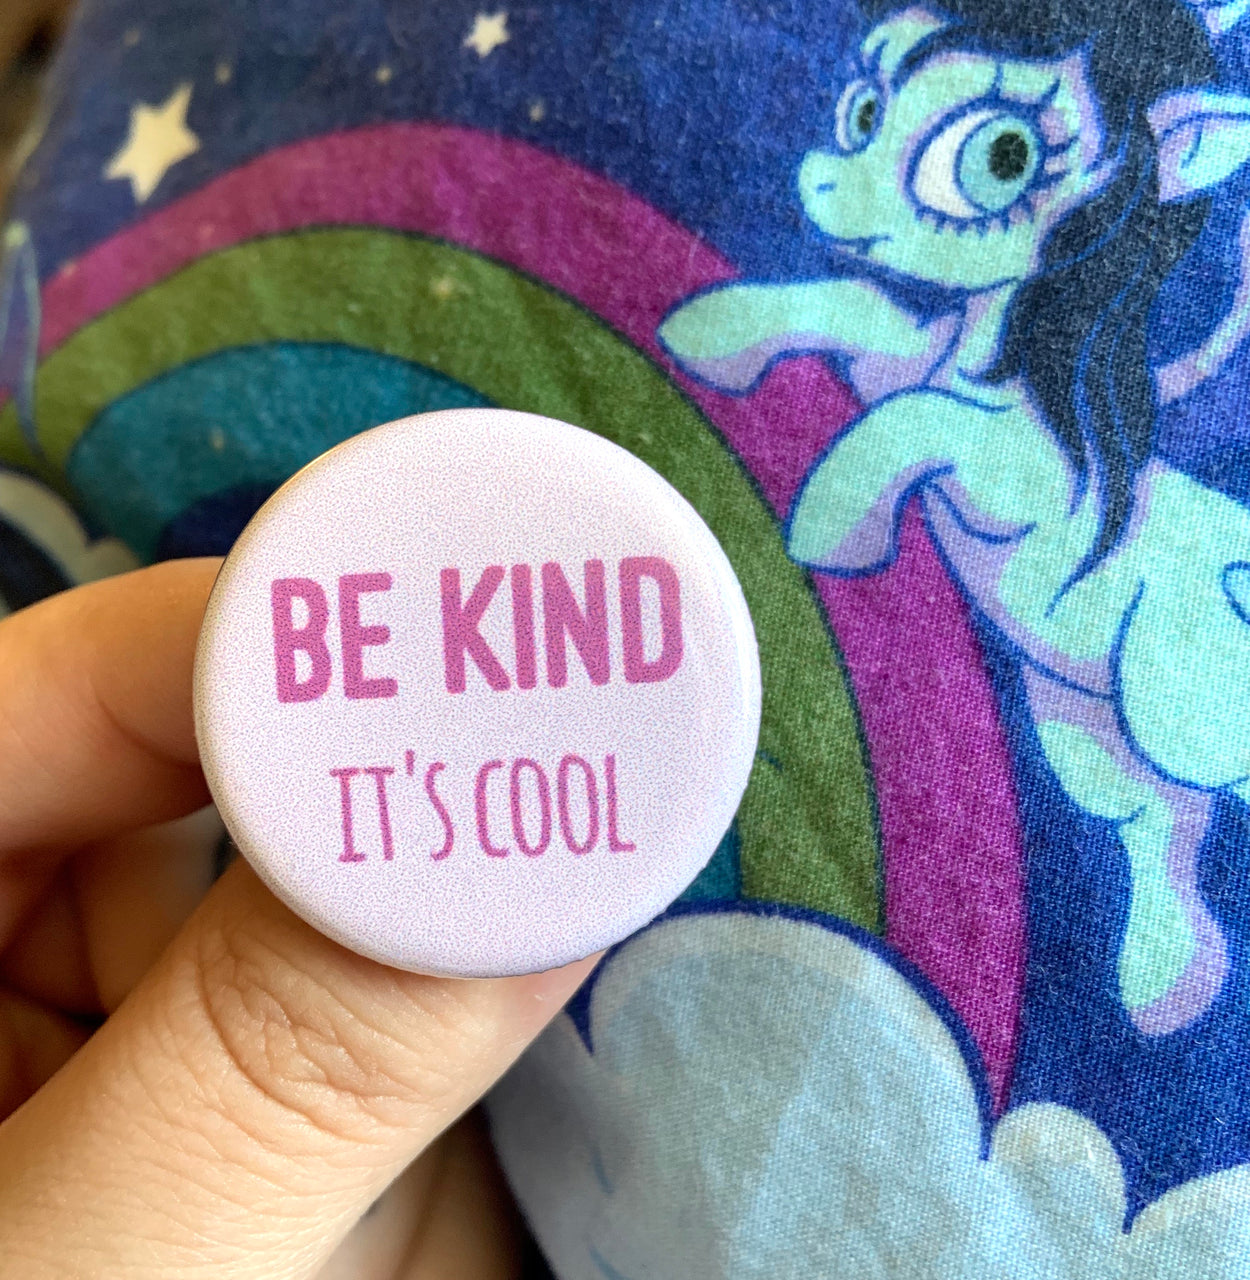 Be kind it's cool